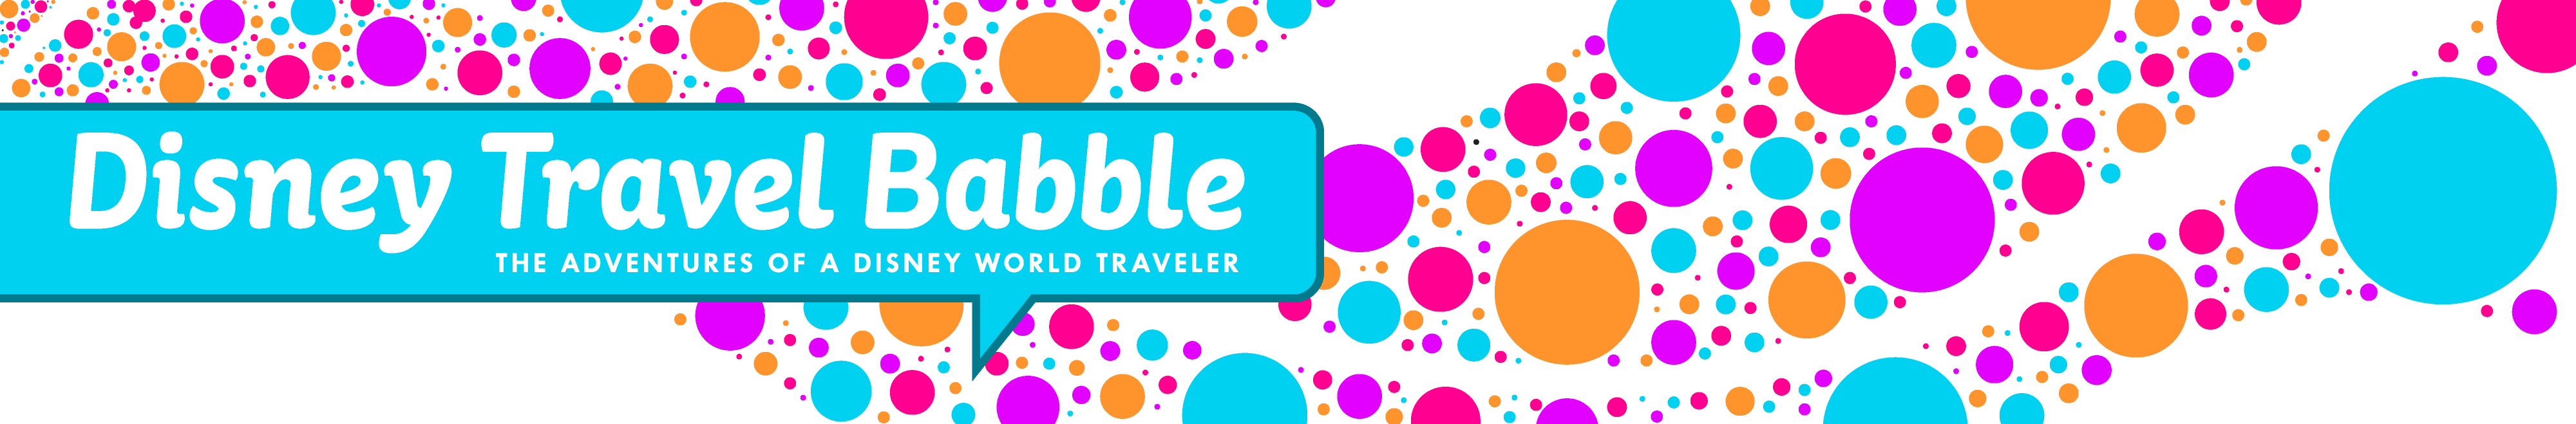 Disney Travel Babble